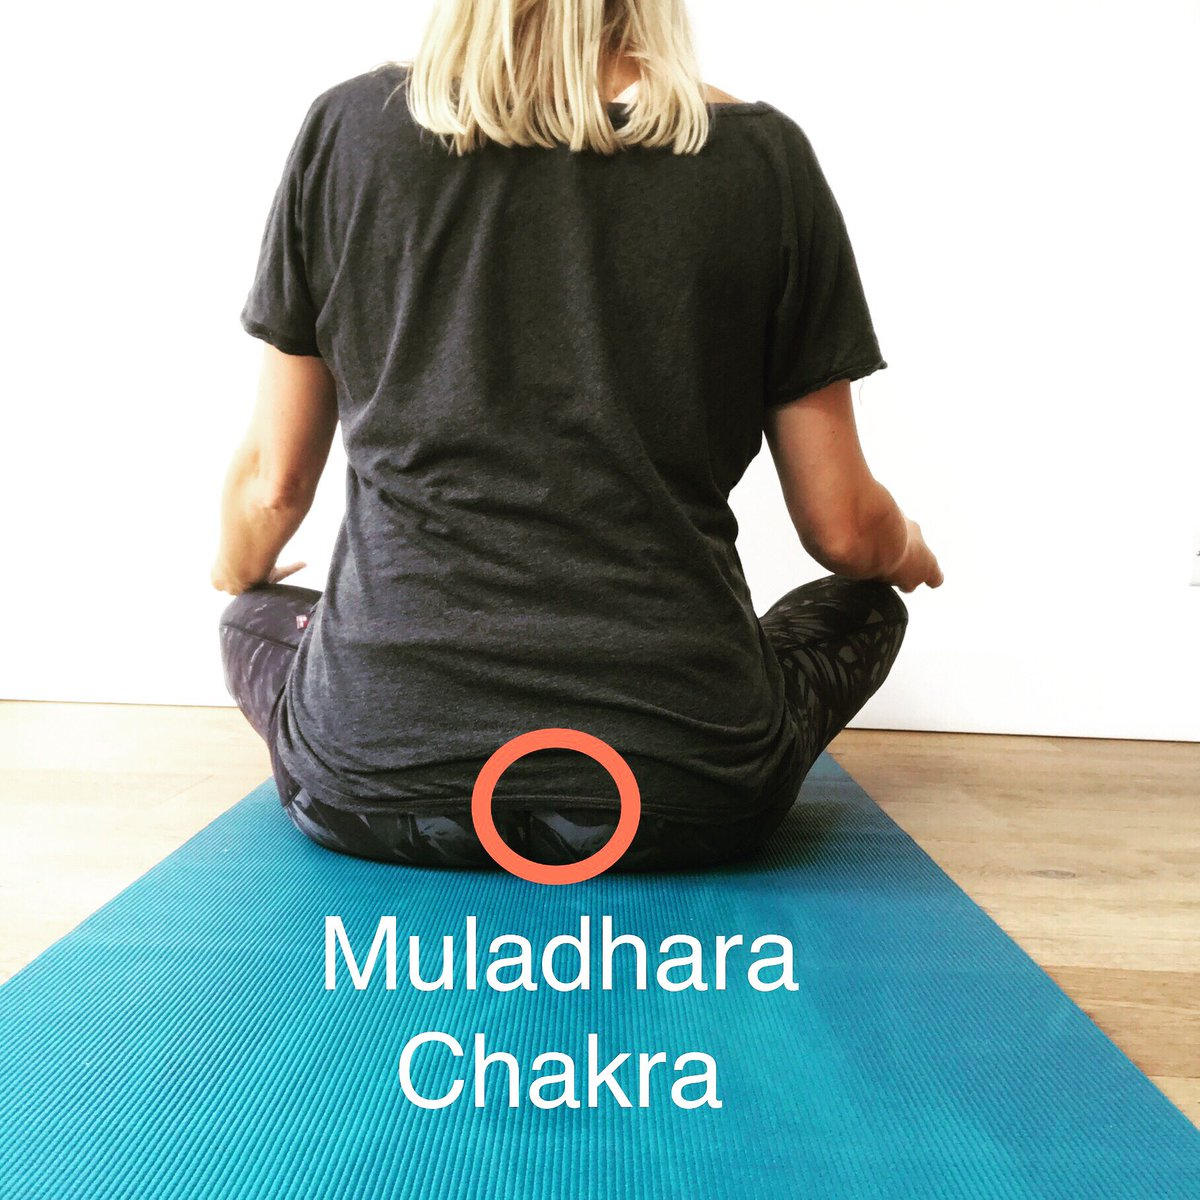 Body Soul Yoga On Twitter The Base Chakra Muladhara What Is Its Significance For You And We Take A Look At The Other Chakras And Associated Elements And Their Meaning Https T Co Ghzoluzdae Yogachakras